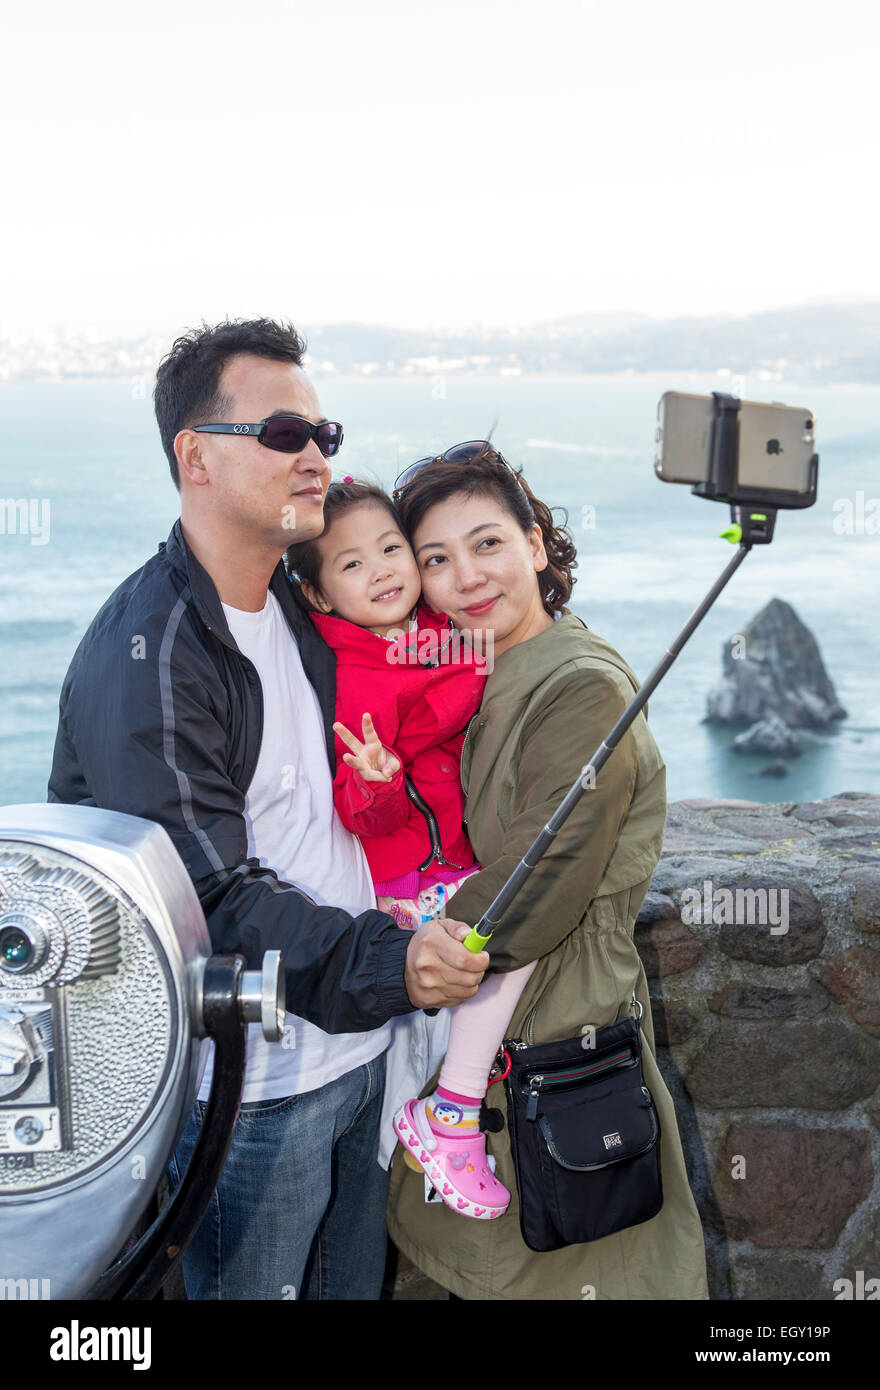 tourists, family, taking selfie, selfie photo, selfie stick, Vista Point, north side of Golden Gate Bridge, city - Stock Image